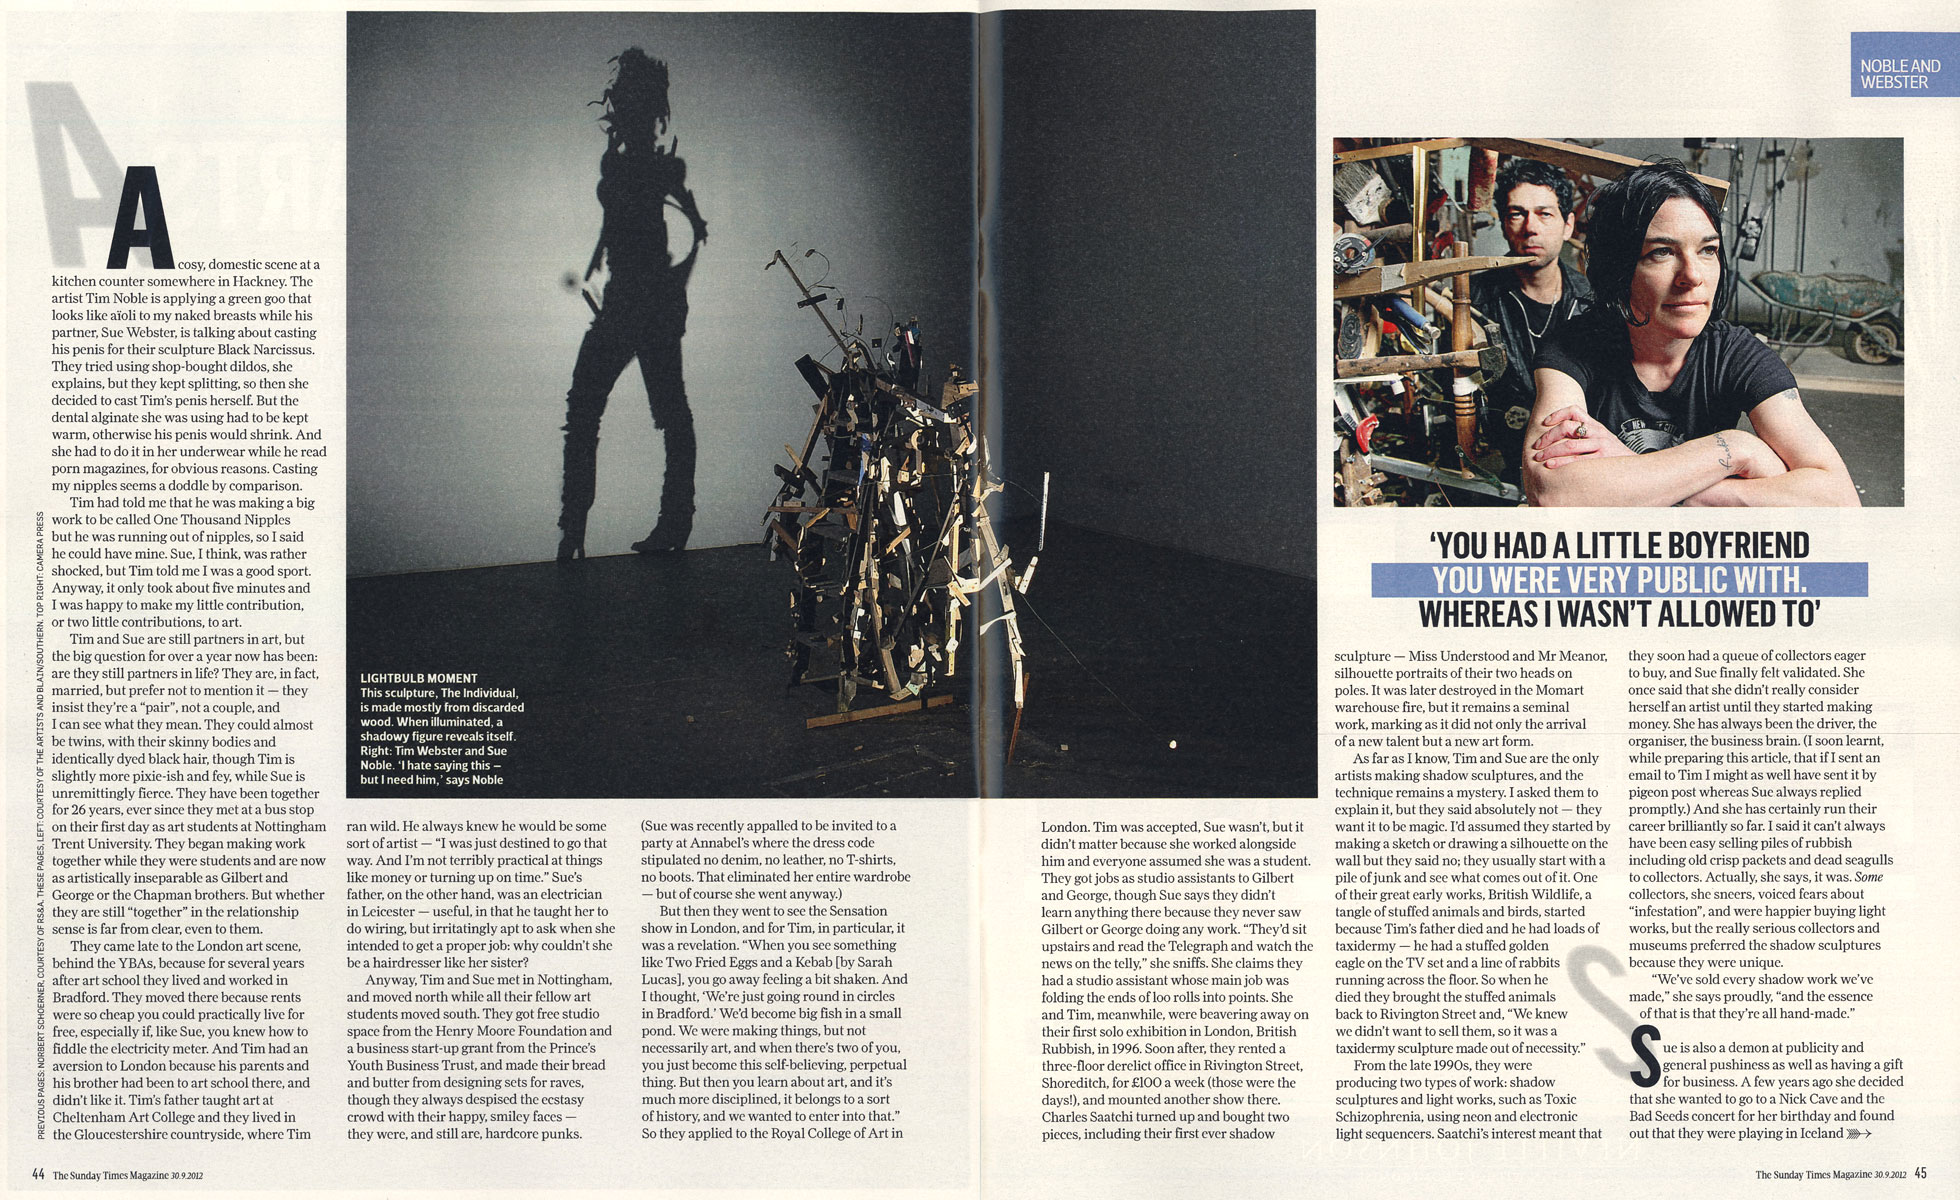 Sunday Times Magazine pgs 44-45